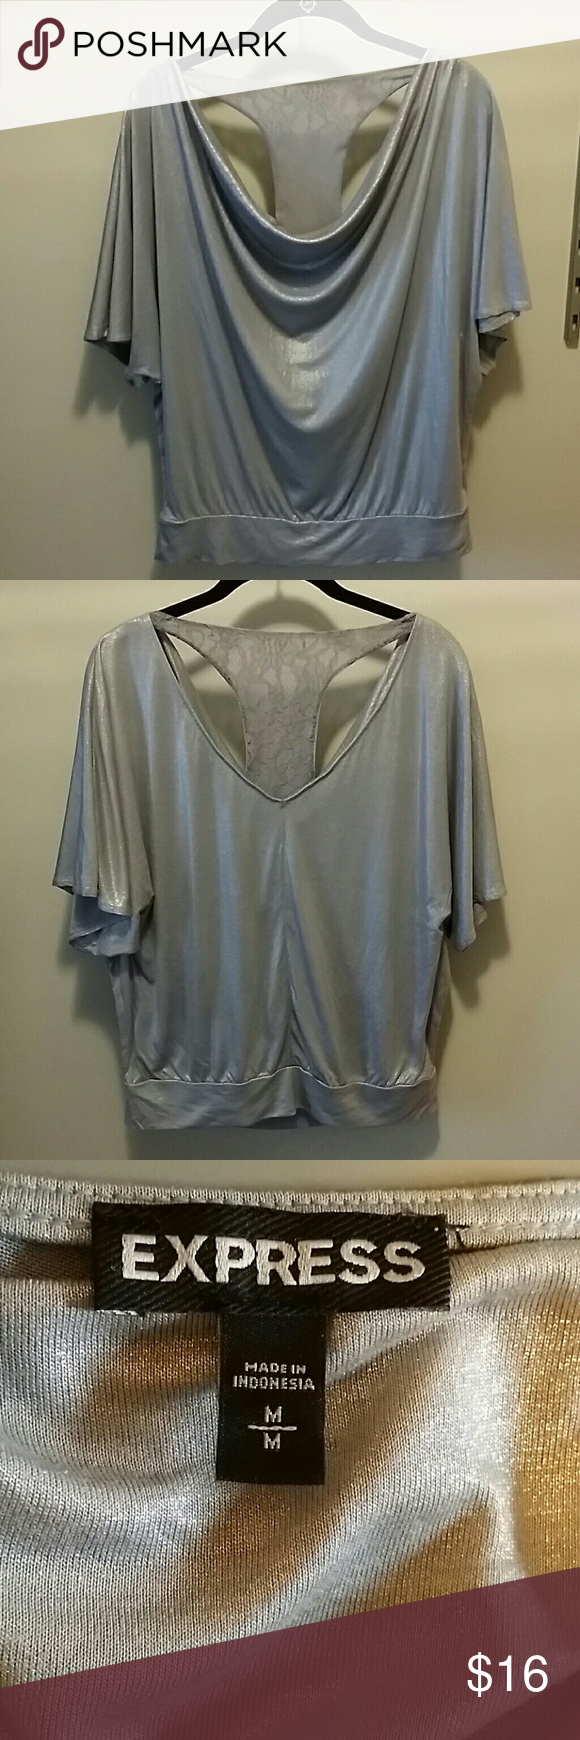 Express Dolman Top with Lace Racerback Size M Express dolman top with a sexy lace racerback. Shimmery silver. Size M Express Tops